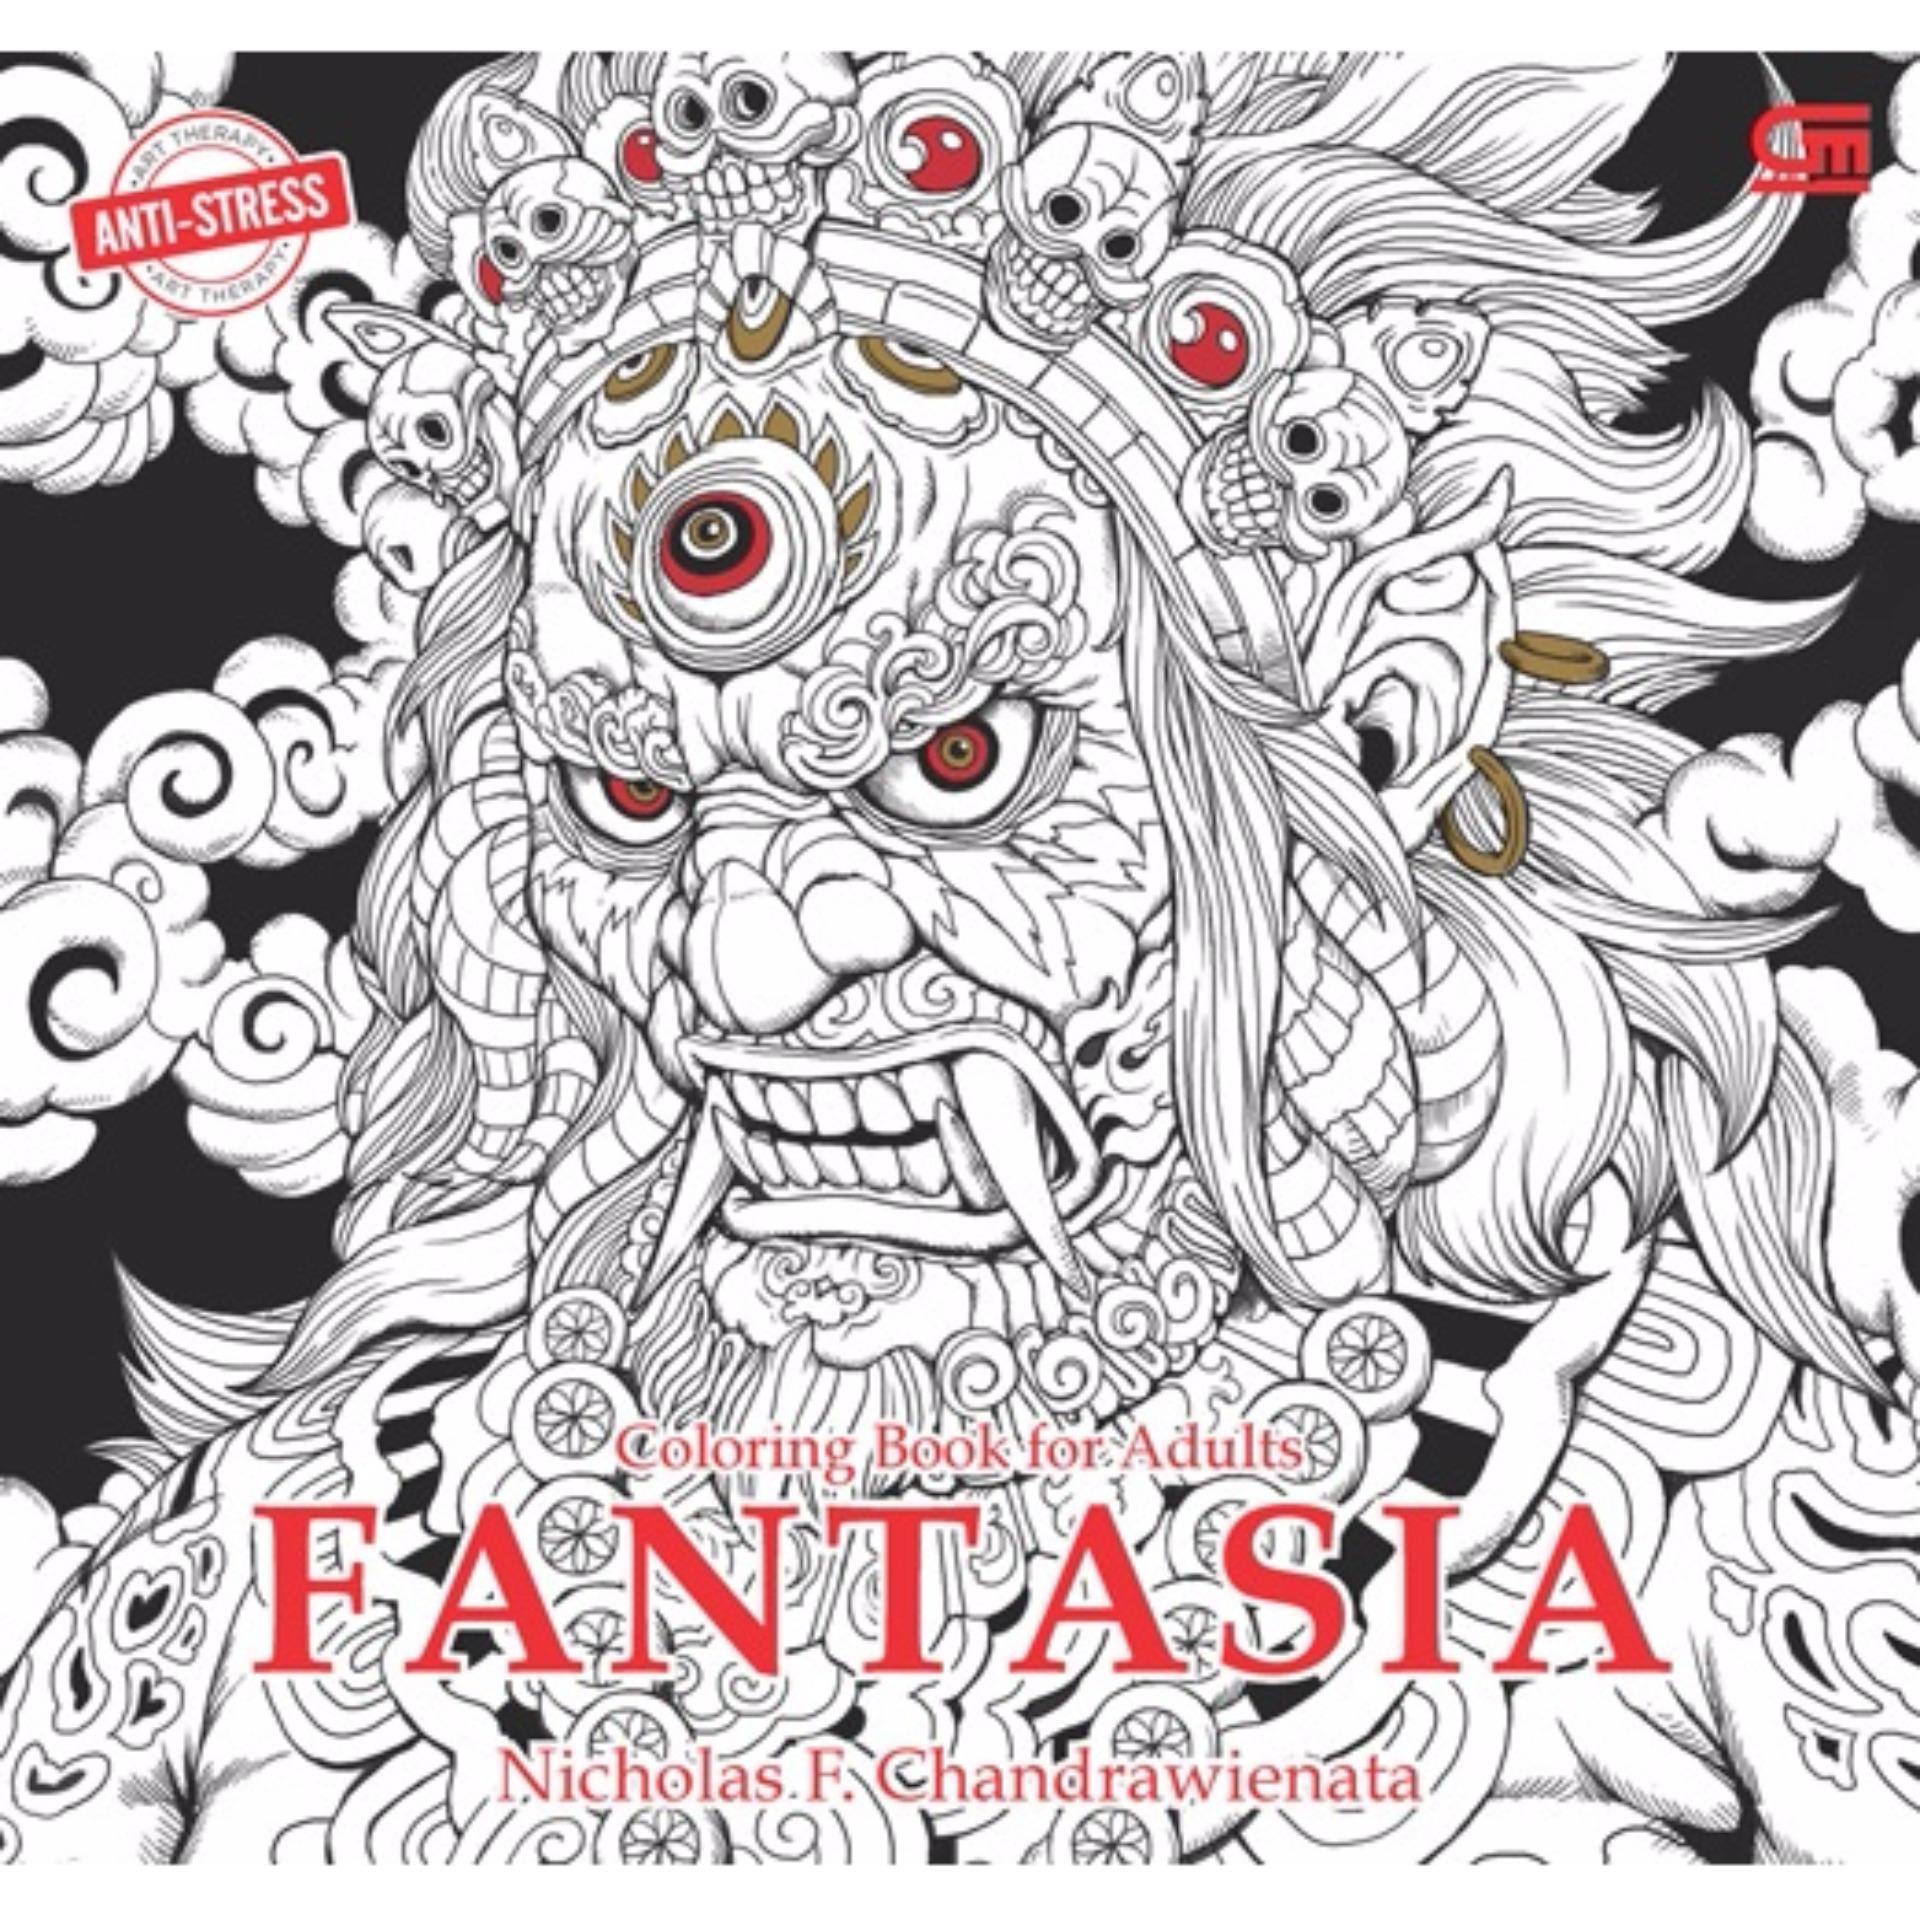 Anti-Stress: Coloring Book For Adults - Fantasia